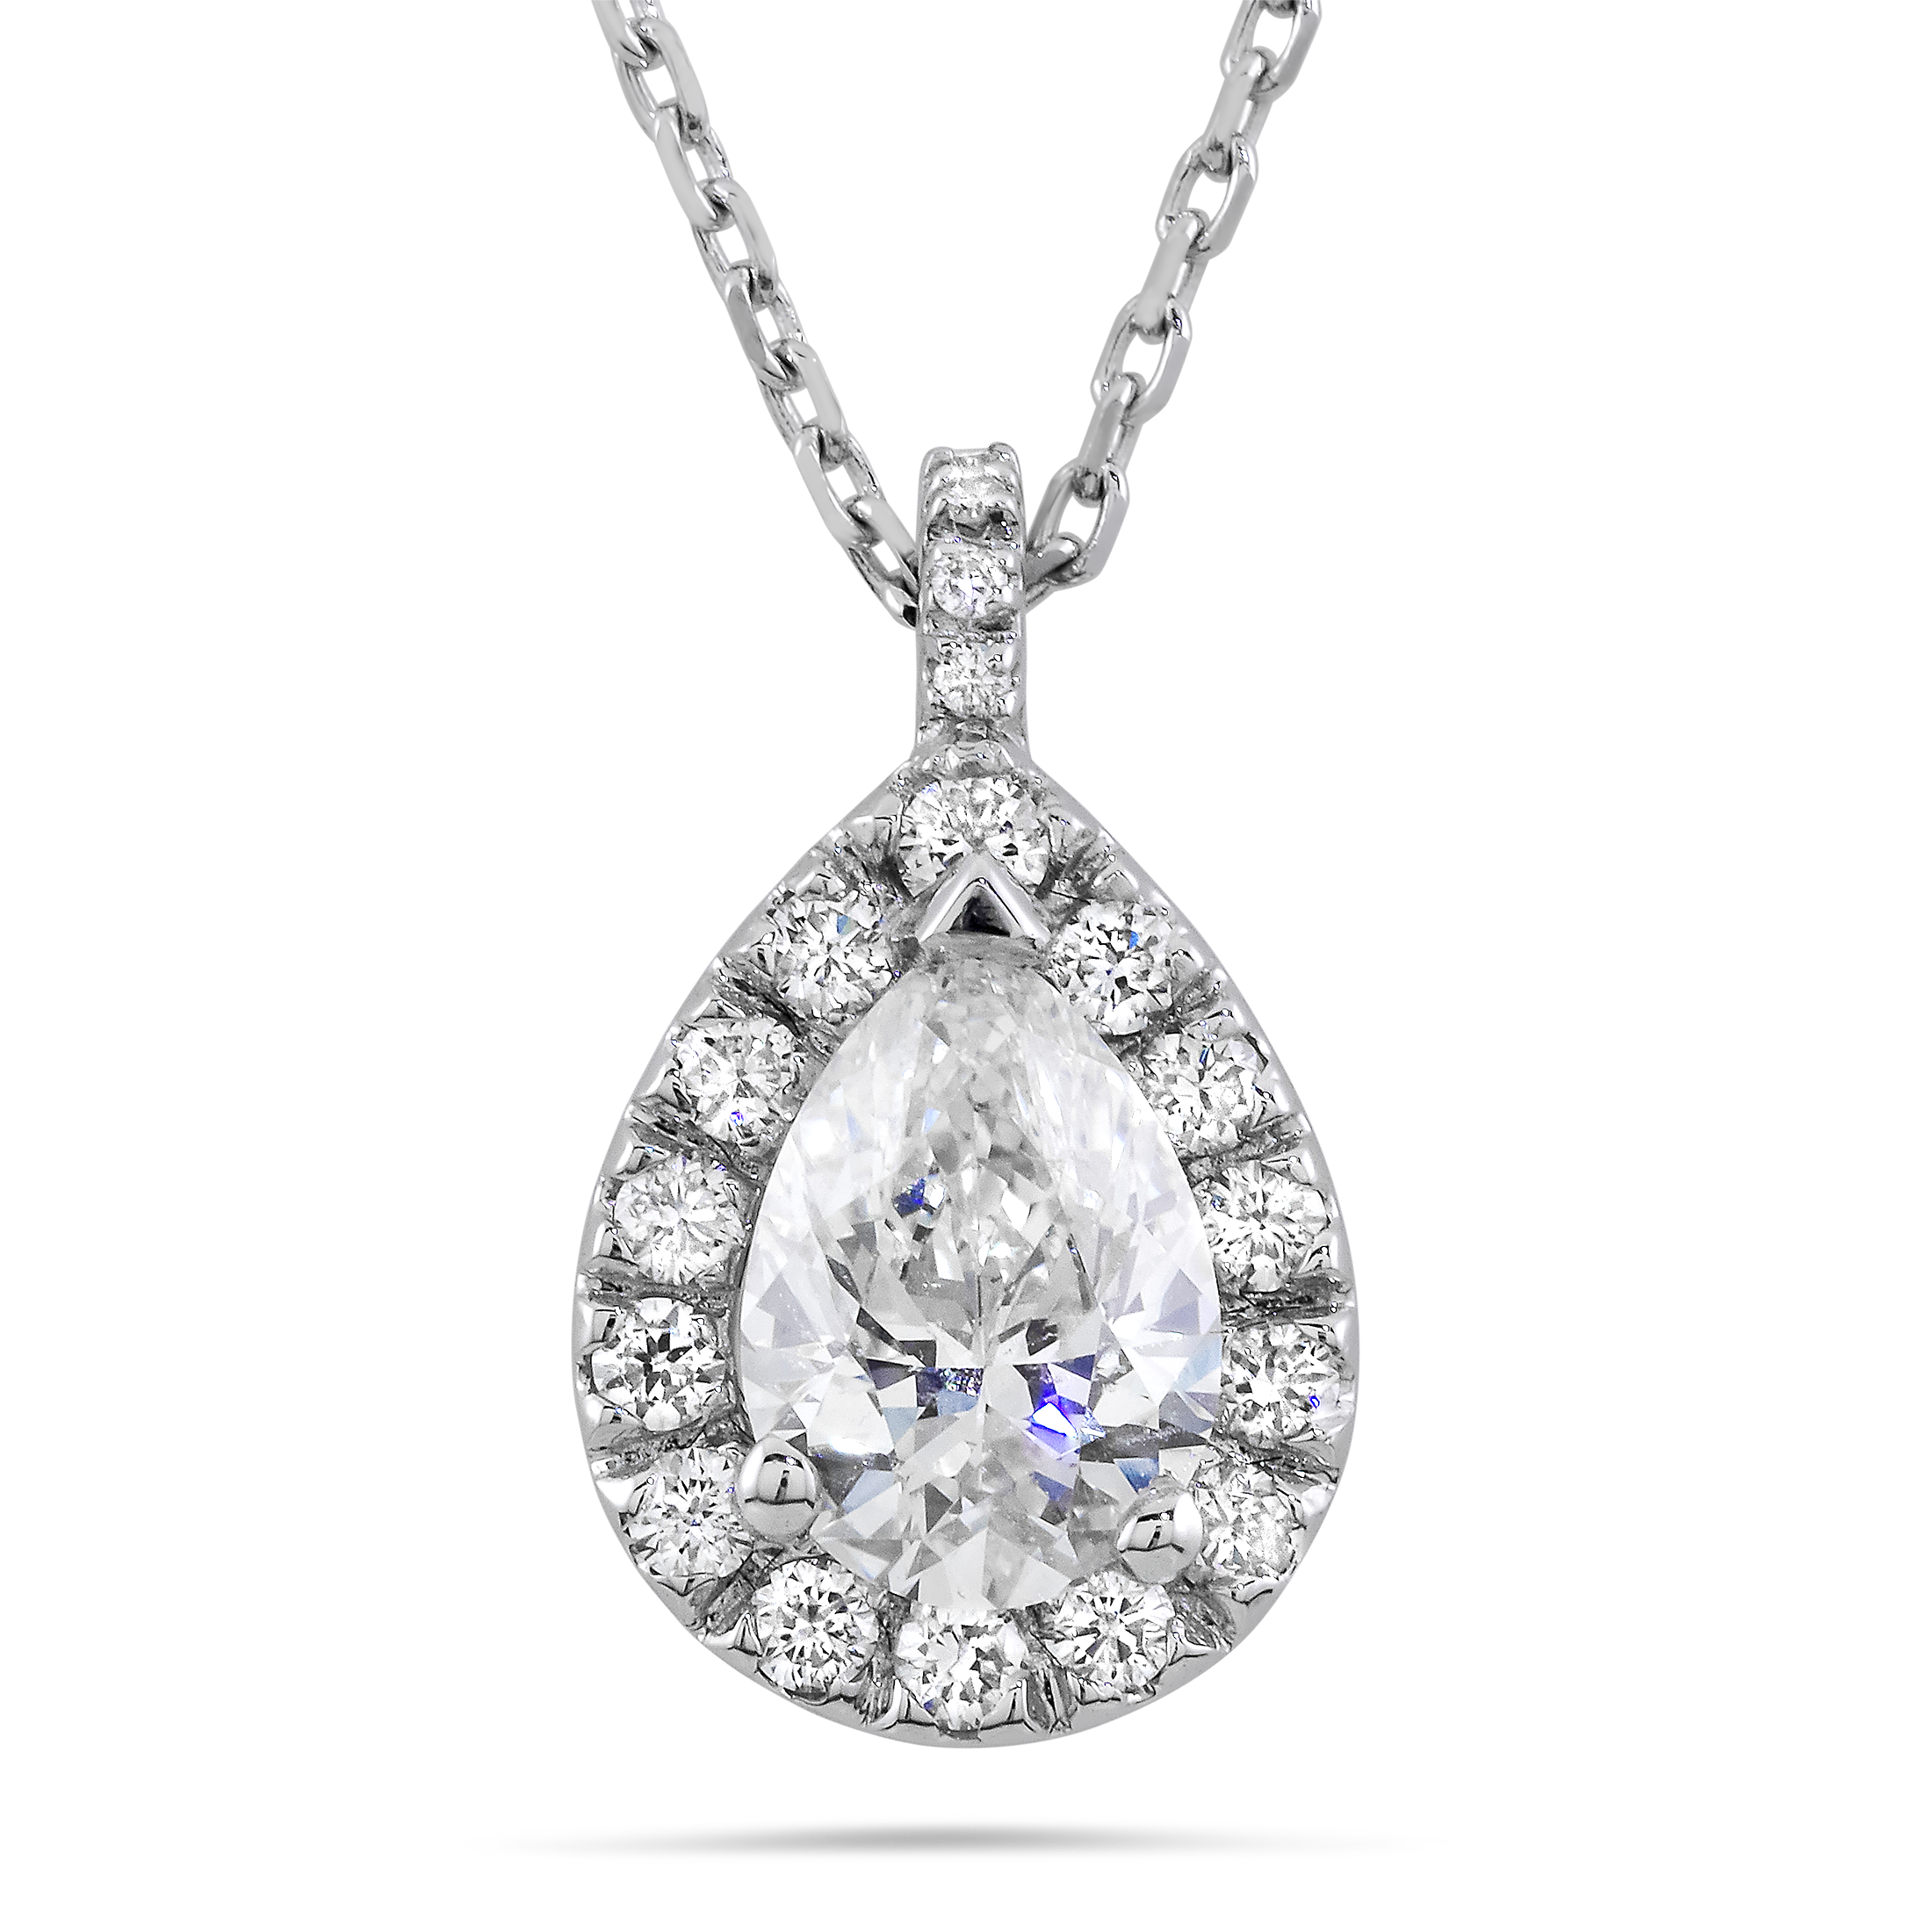 Transparent Jewellery PNG image #36060